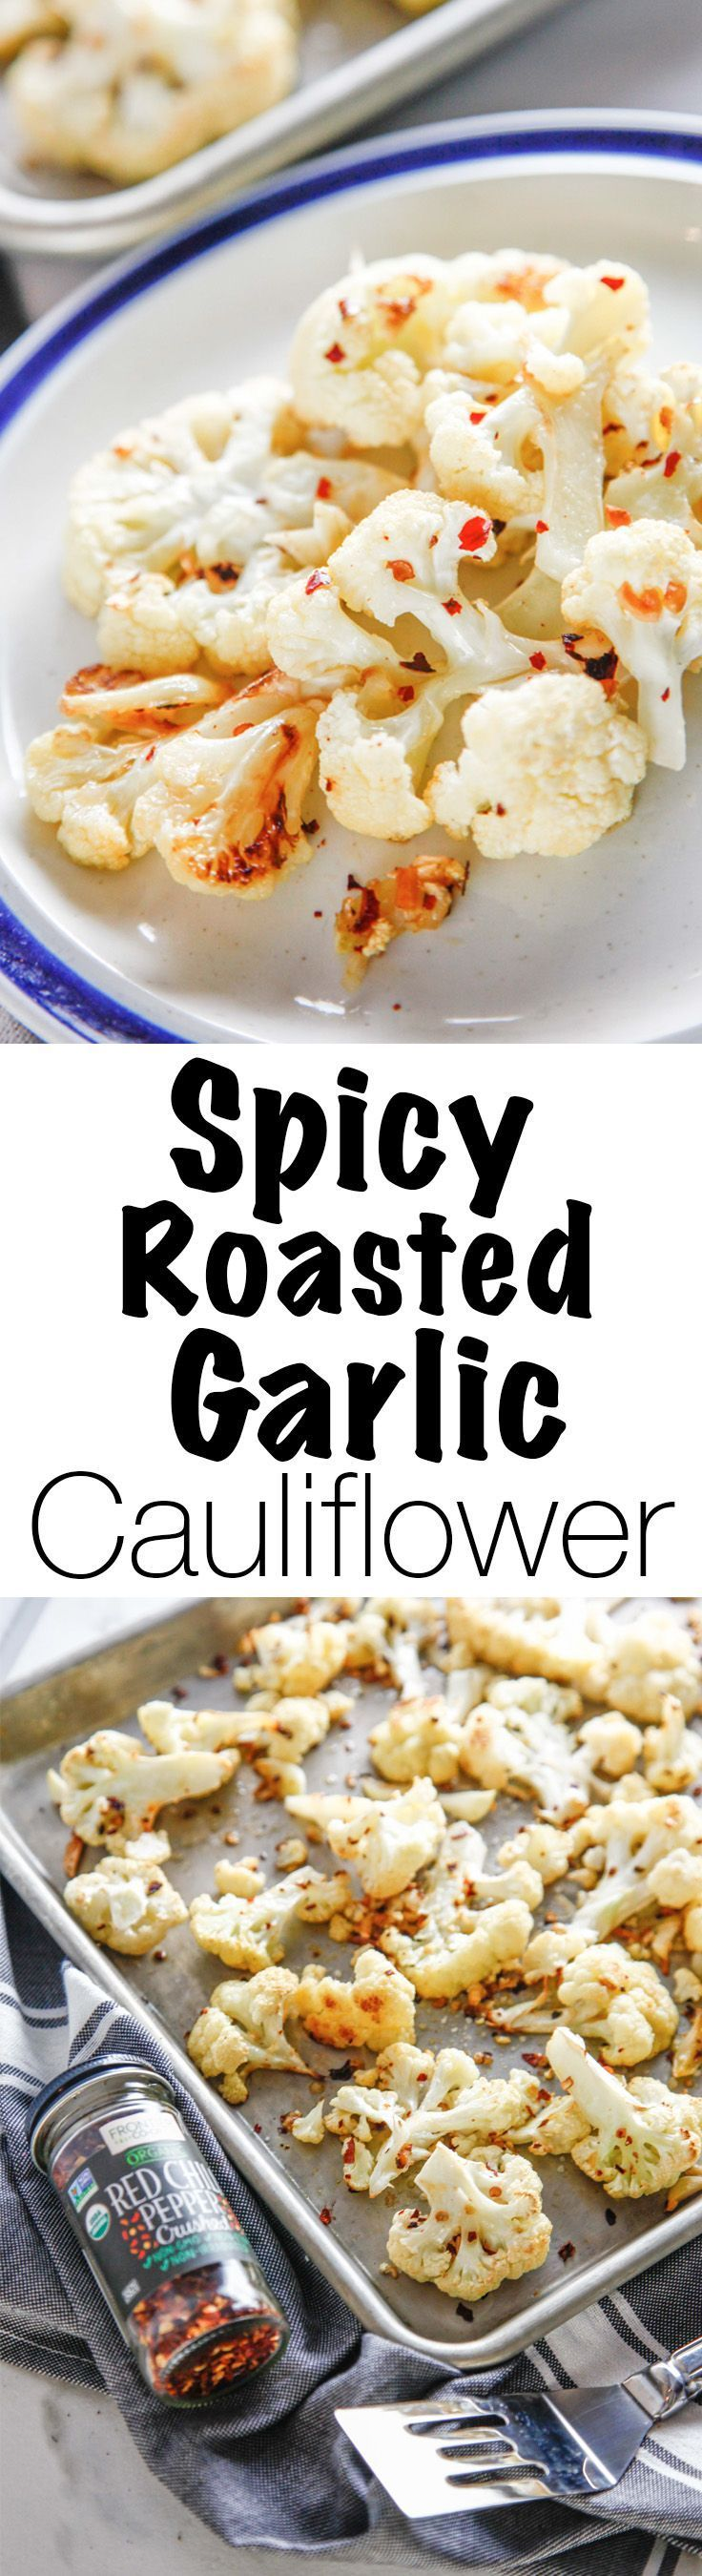 Cook with purpose with Frontier Co-op's Organic Red Pepper Flakes and make this delicious vegetable side dish. This Spicy Roasted Garlic Cauliflower is the perfect recipe for your dinner! Via @thebrooklyncook